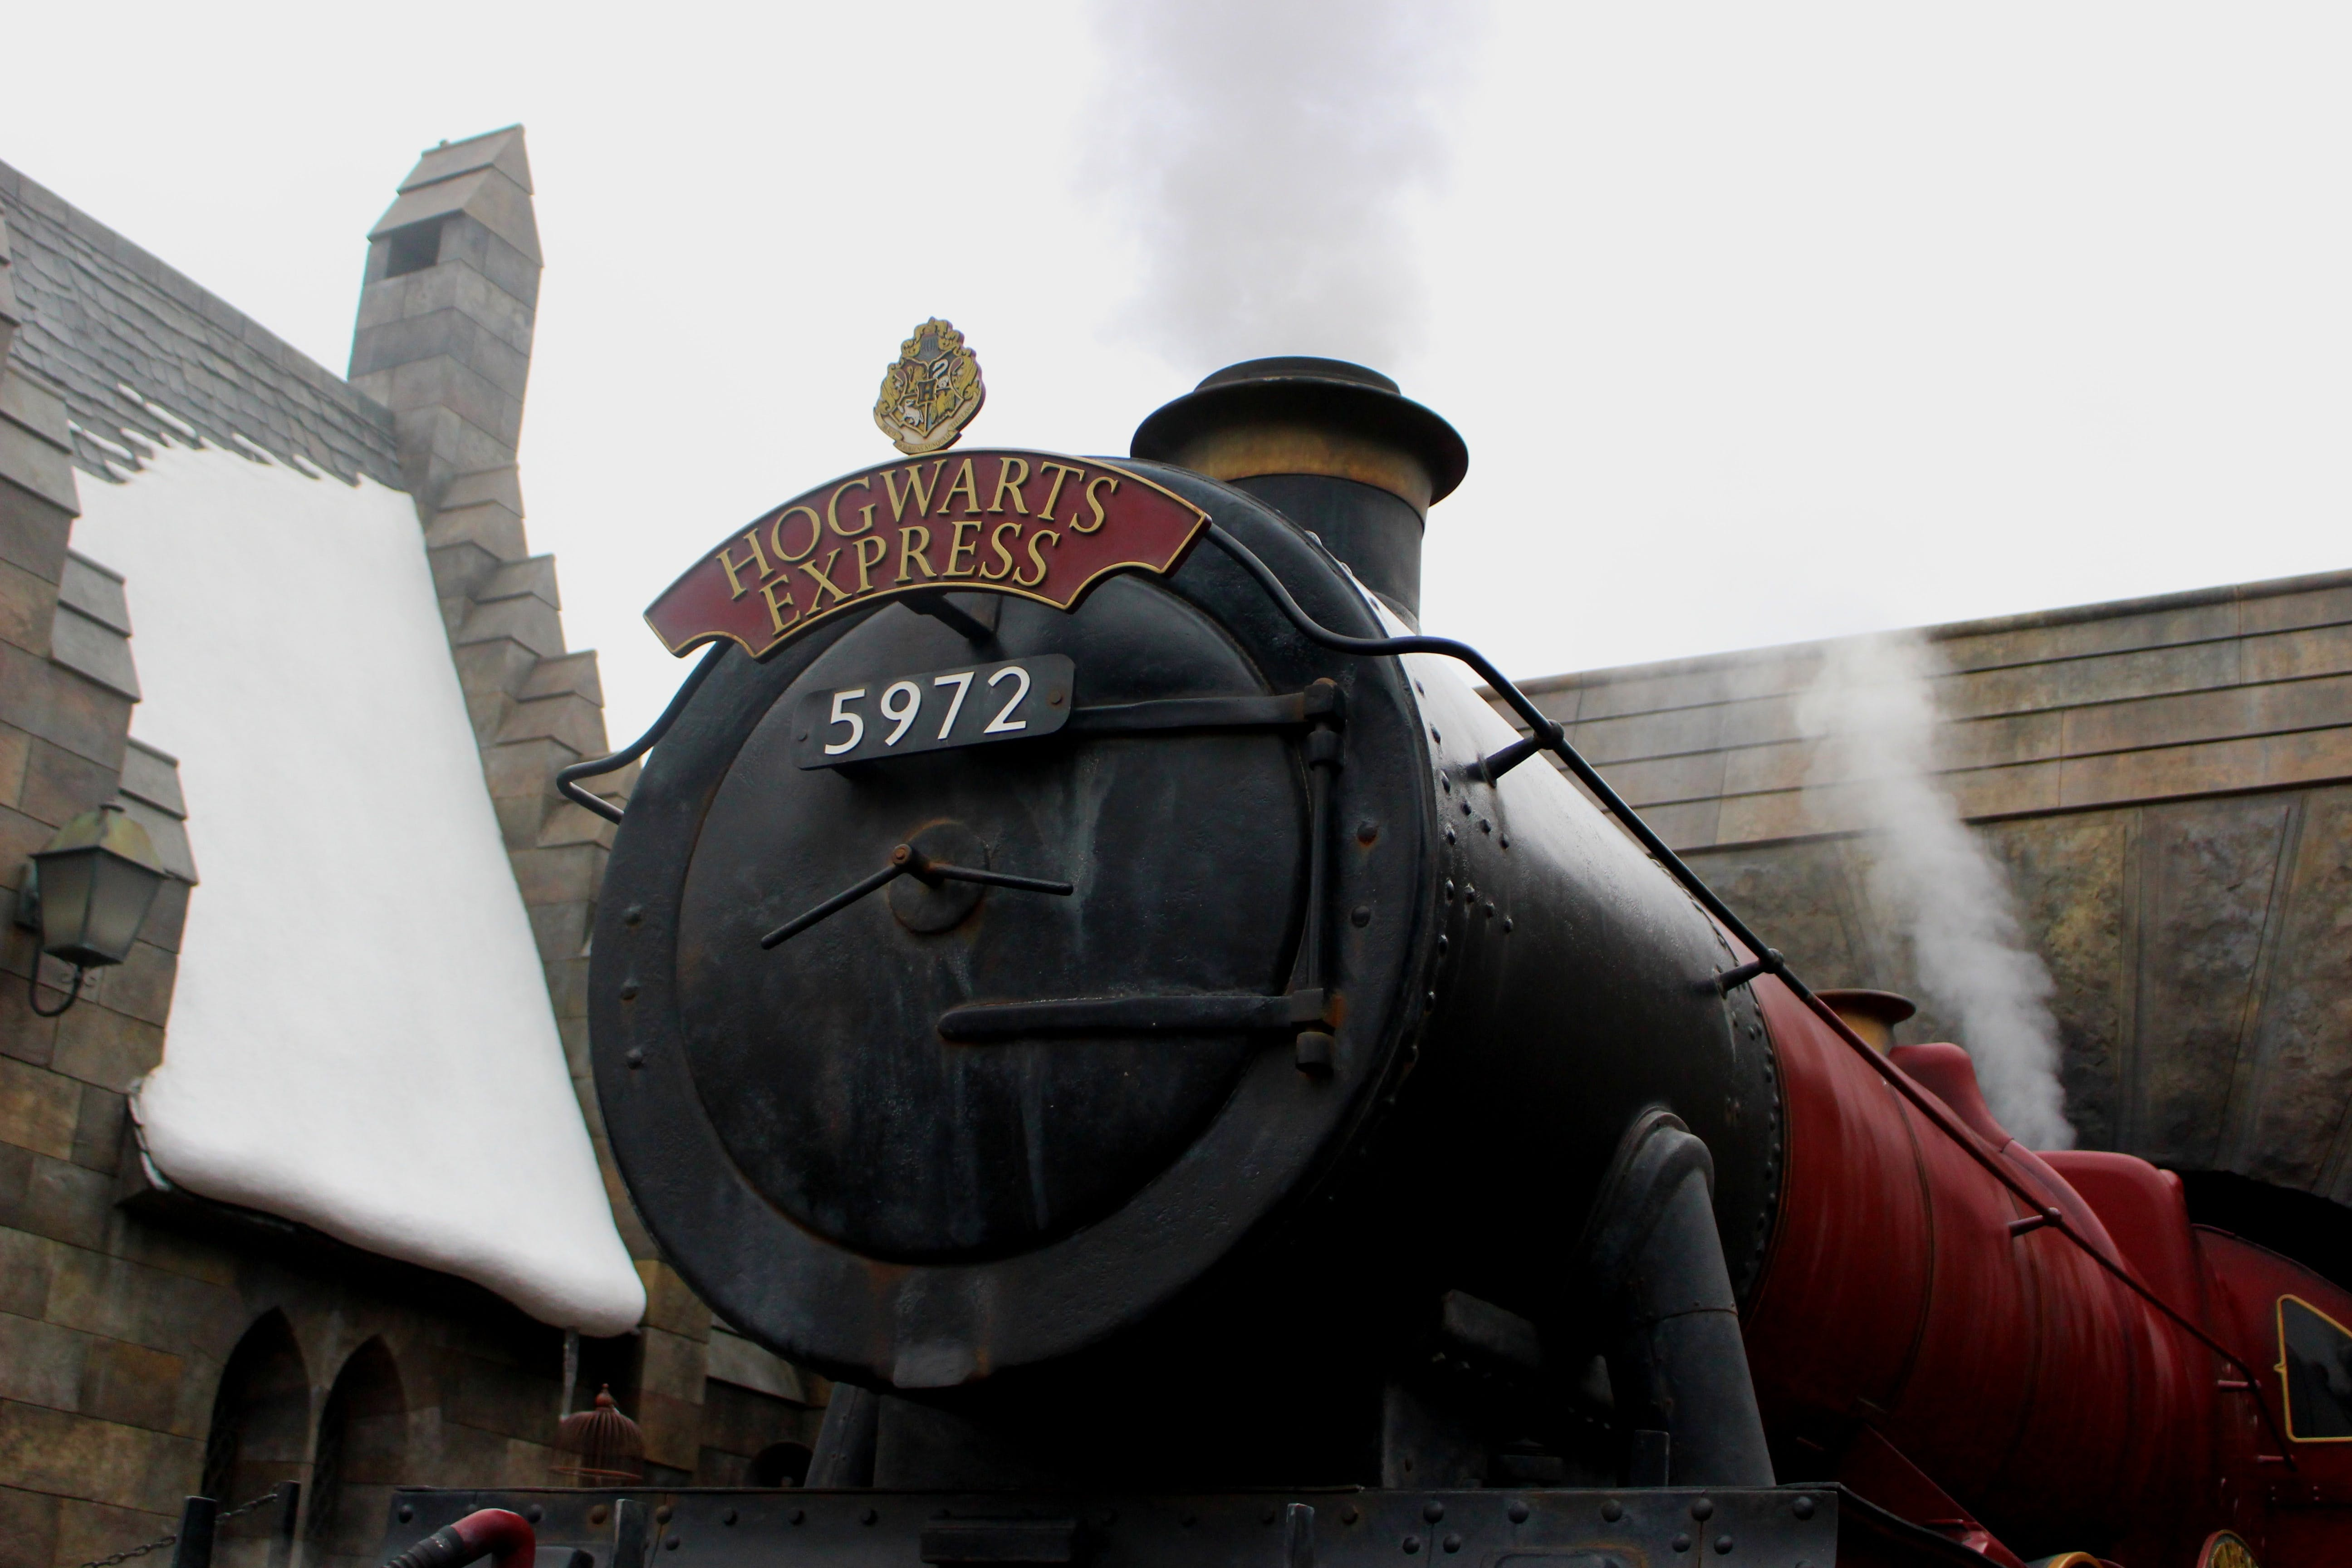 What can Hogwarts teach us about online learning?